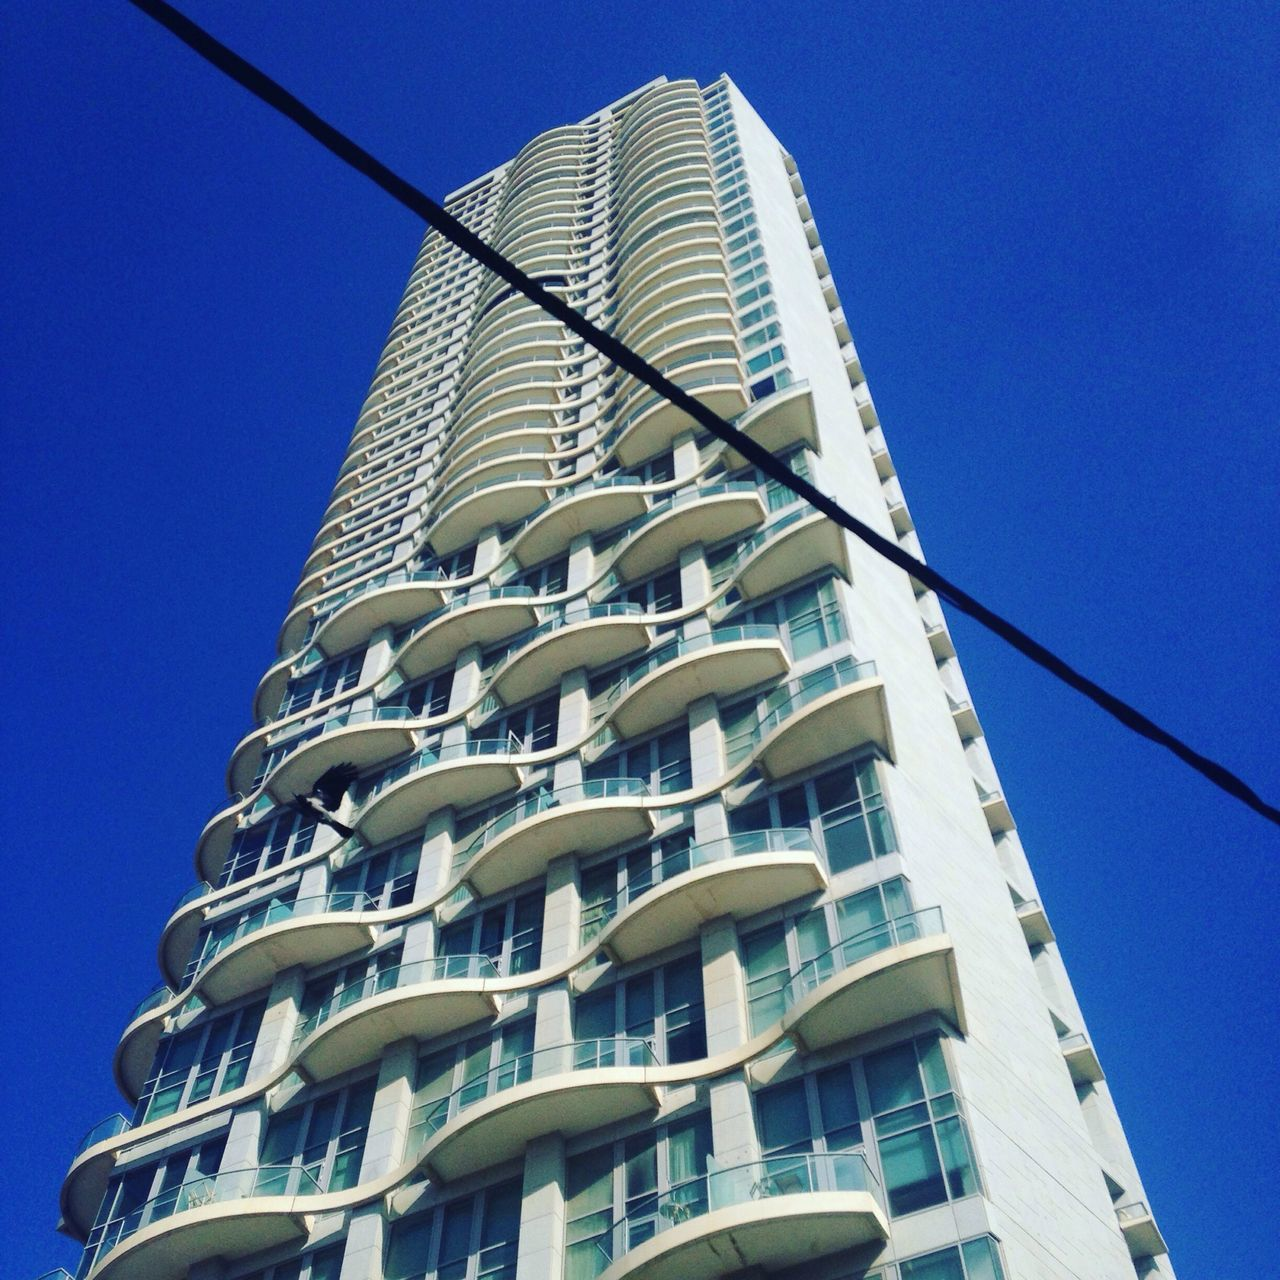 architecture, low angle view, building exterior, built structure, window, clear sky, blue, day, balcony, modern, no people, residential building, skyscraper, outdoors, apartment, city, sky